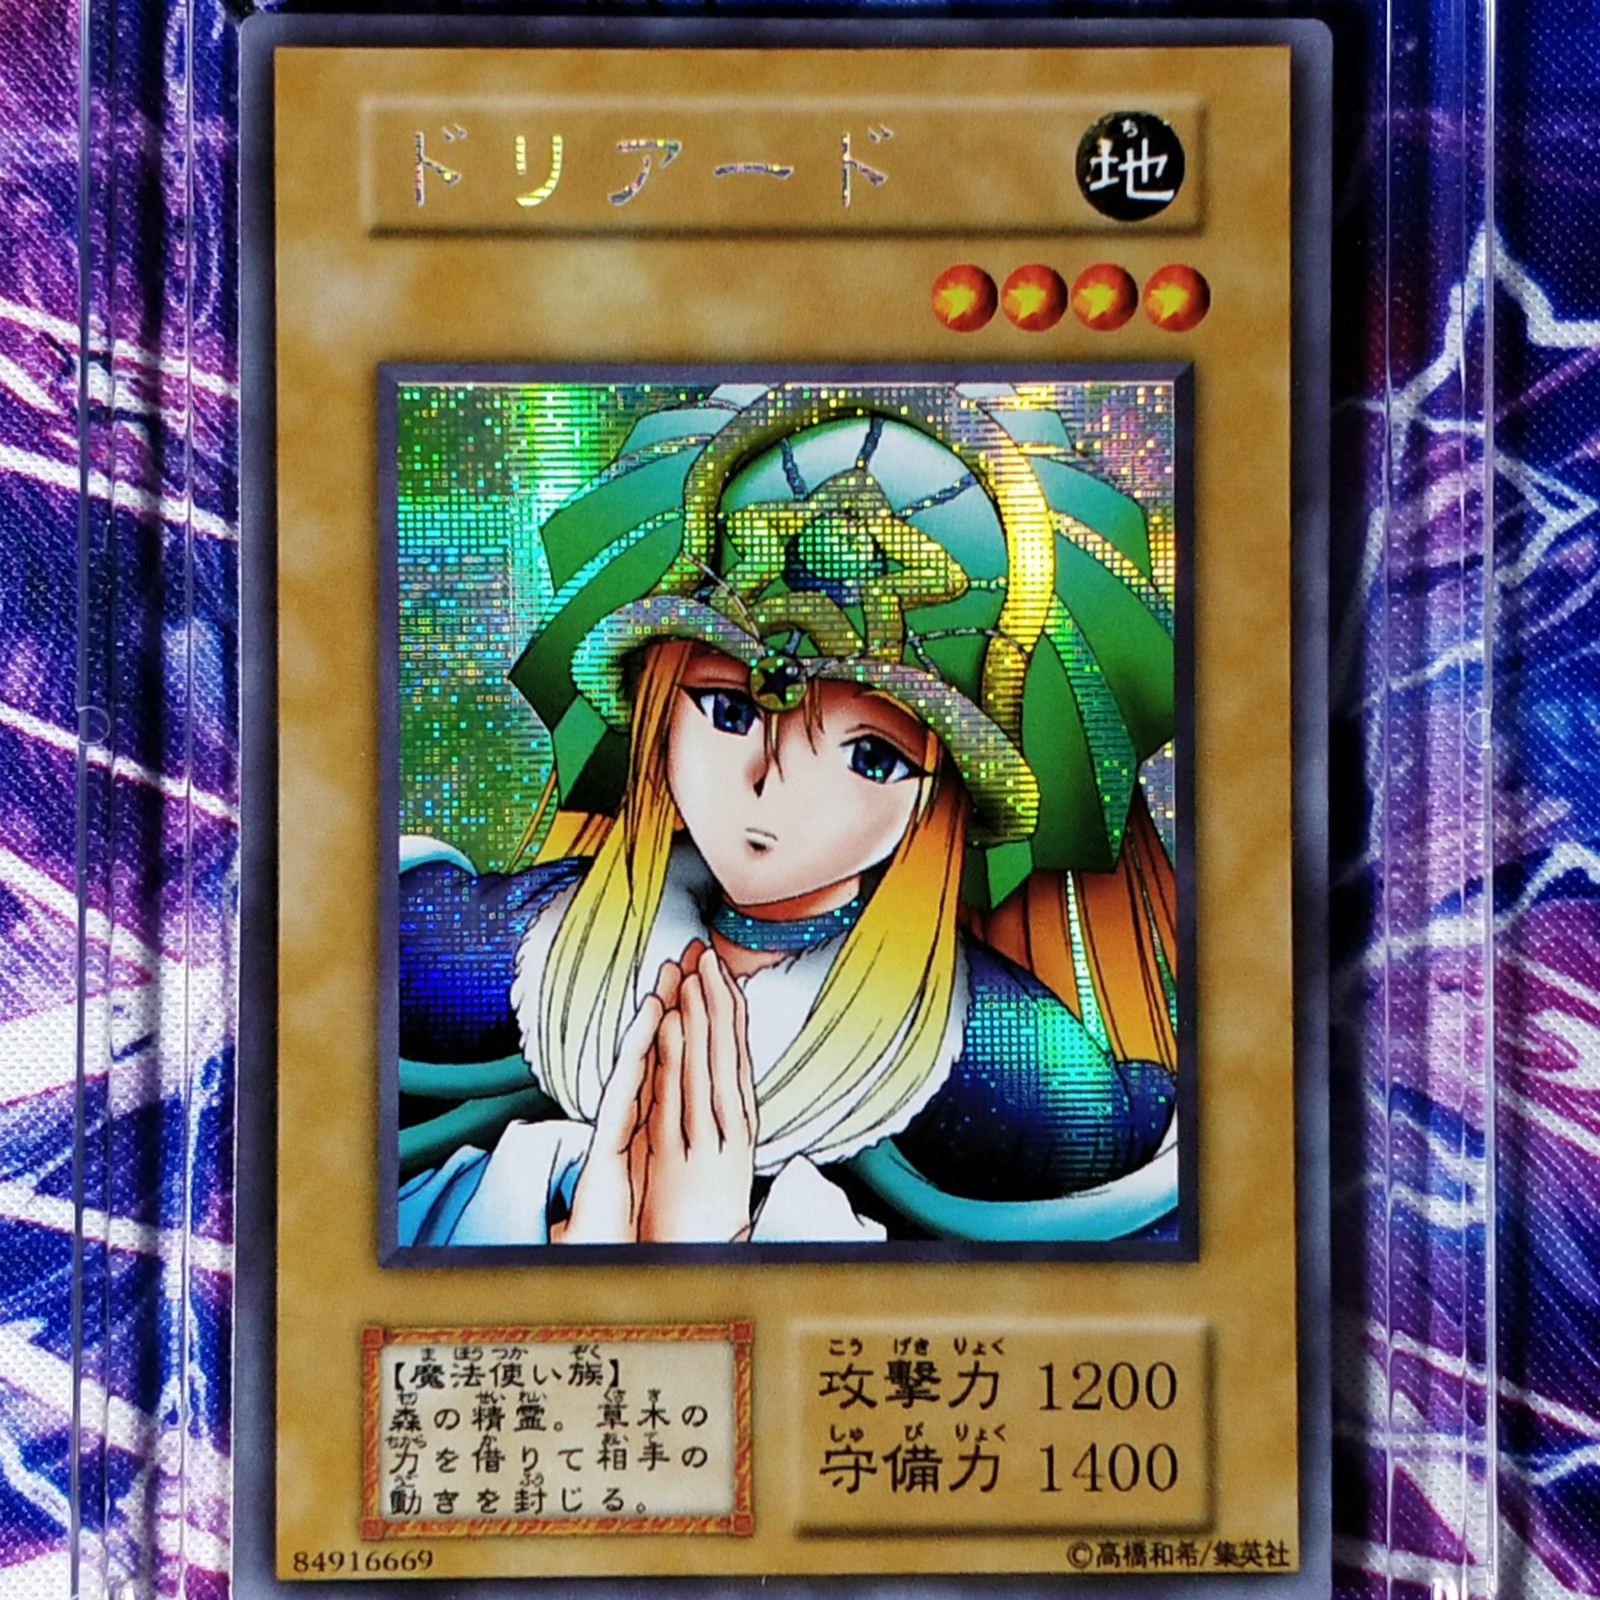 Yu Gi Oh DIY Dryad Colorful Toys Hobbies Hobby Collectibles Game Collection Anime Cards